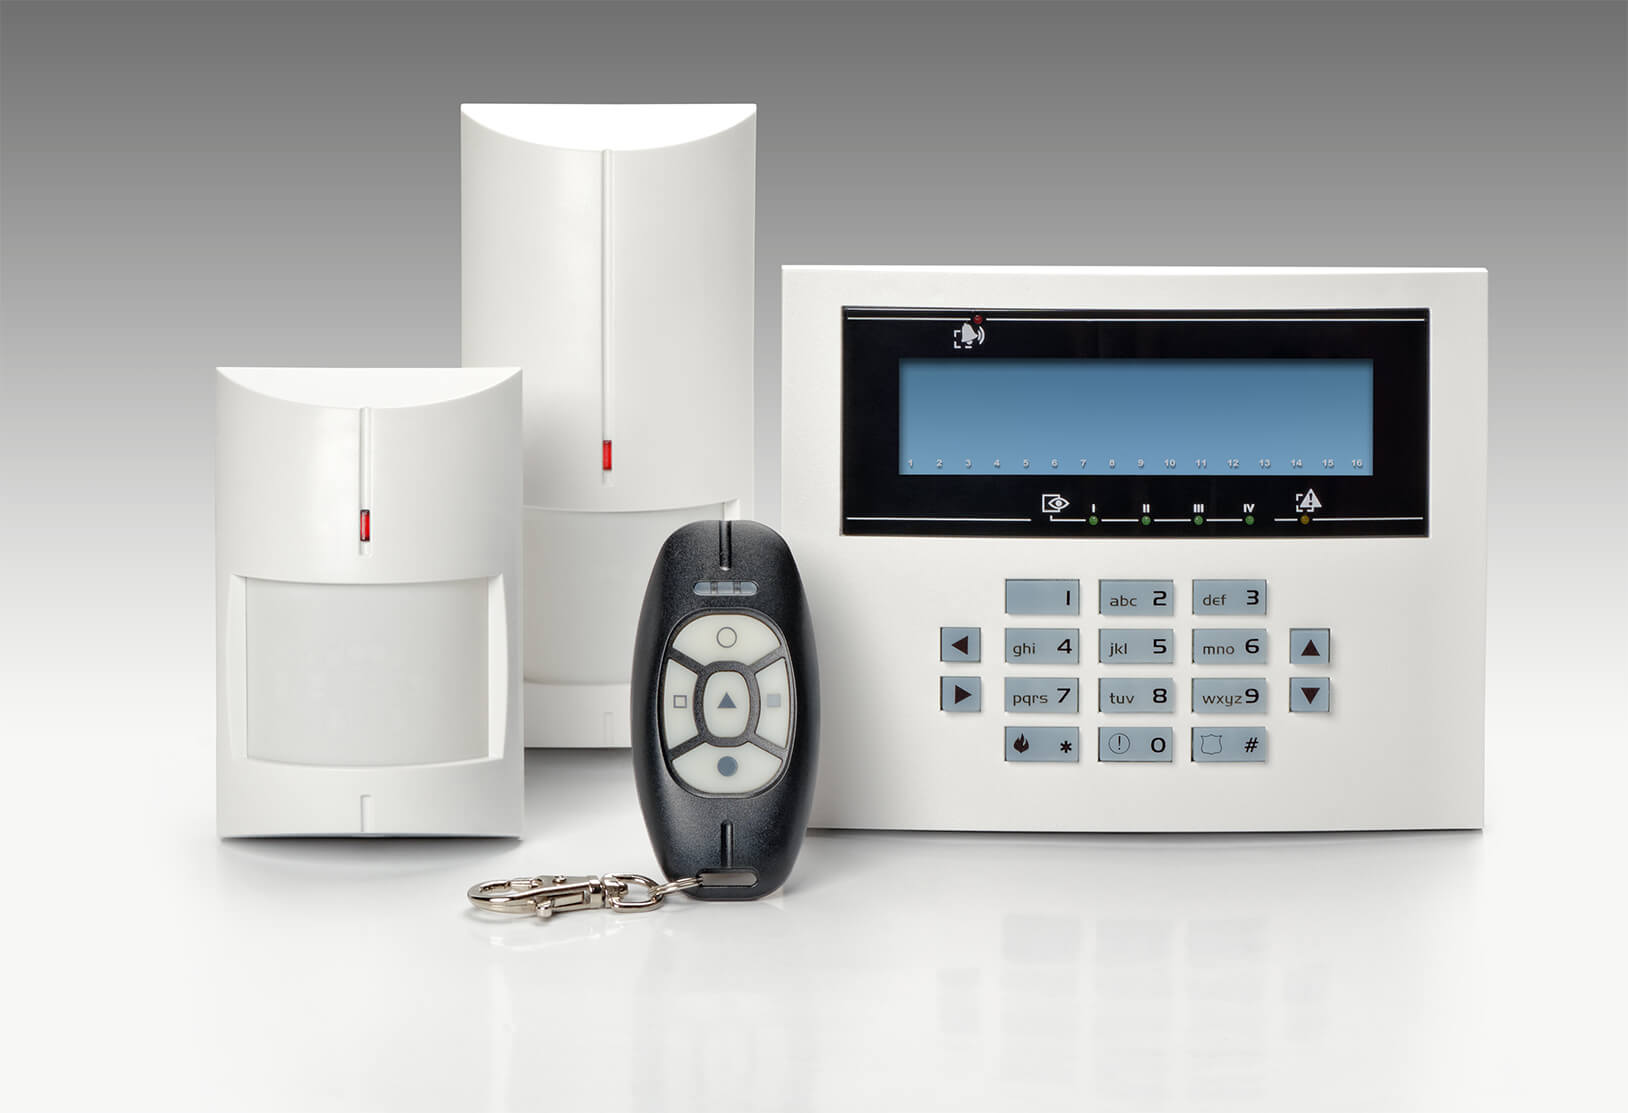 Commercial Burglar Alarms For Business in Canonbury N1  - Local Canonbury N1 burglar alarm company.Call 02078872244 - Dedicated to Safety & Security. Companies, shops and homes ..